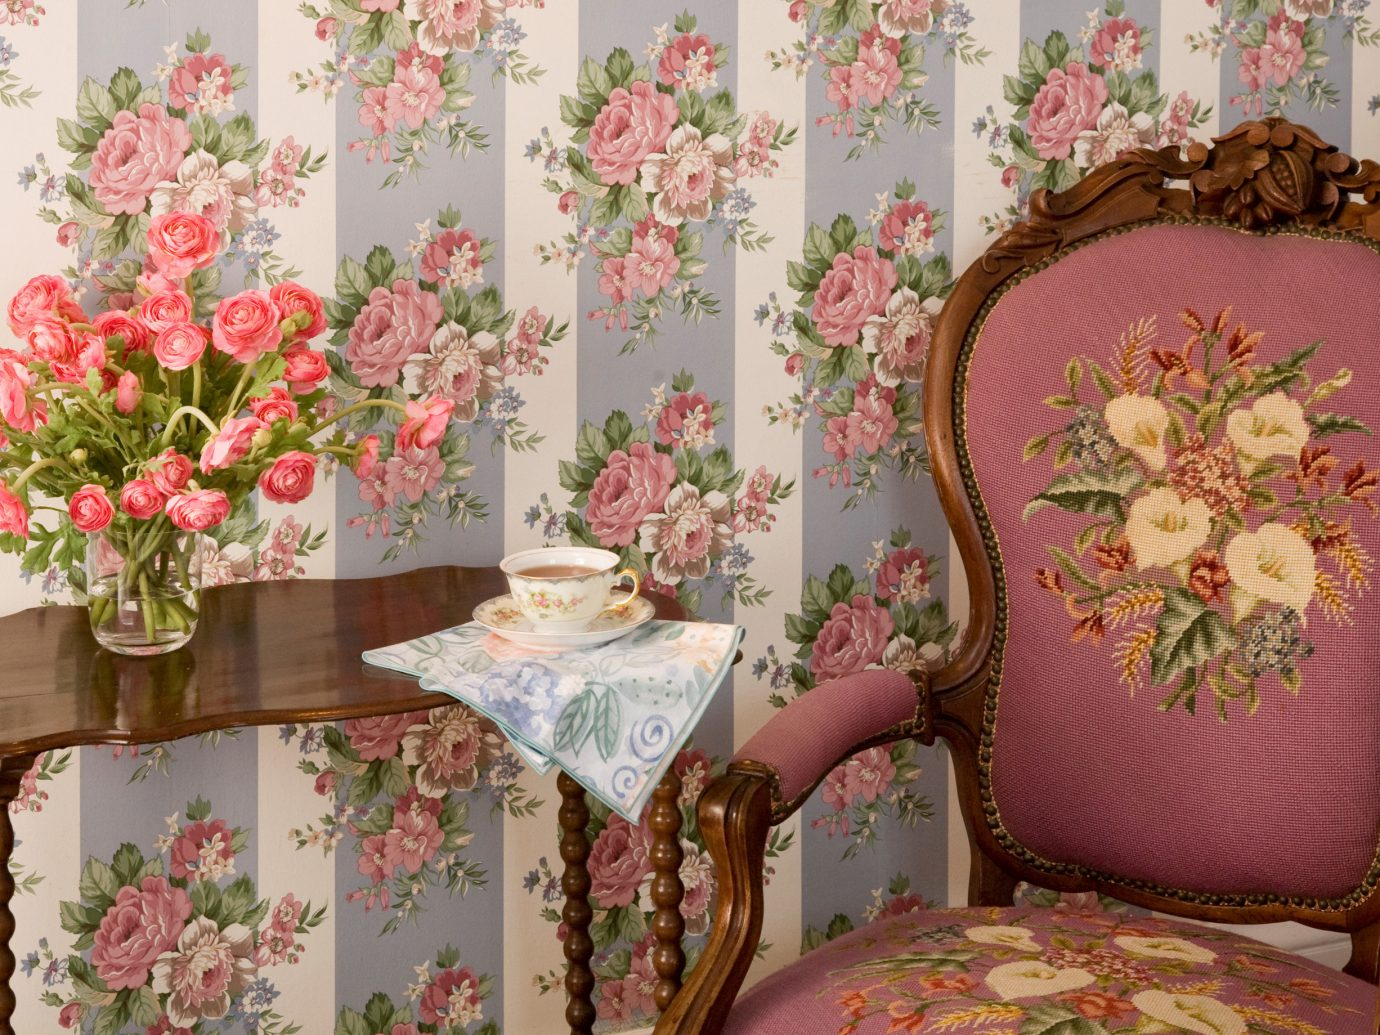 Hotels wall indoor pink room flower interior design art floristry flower arranging textile spring bed sheet curtain living room floral design wallpaper decorated furniture